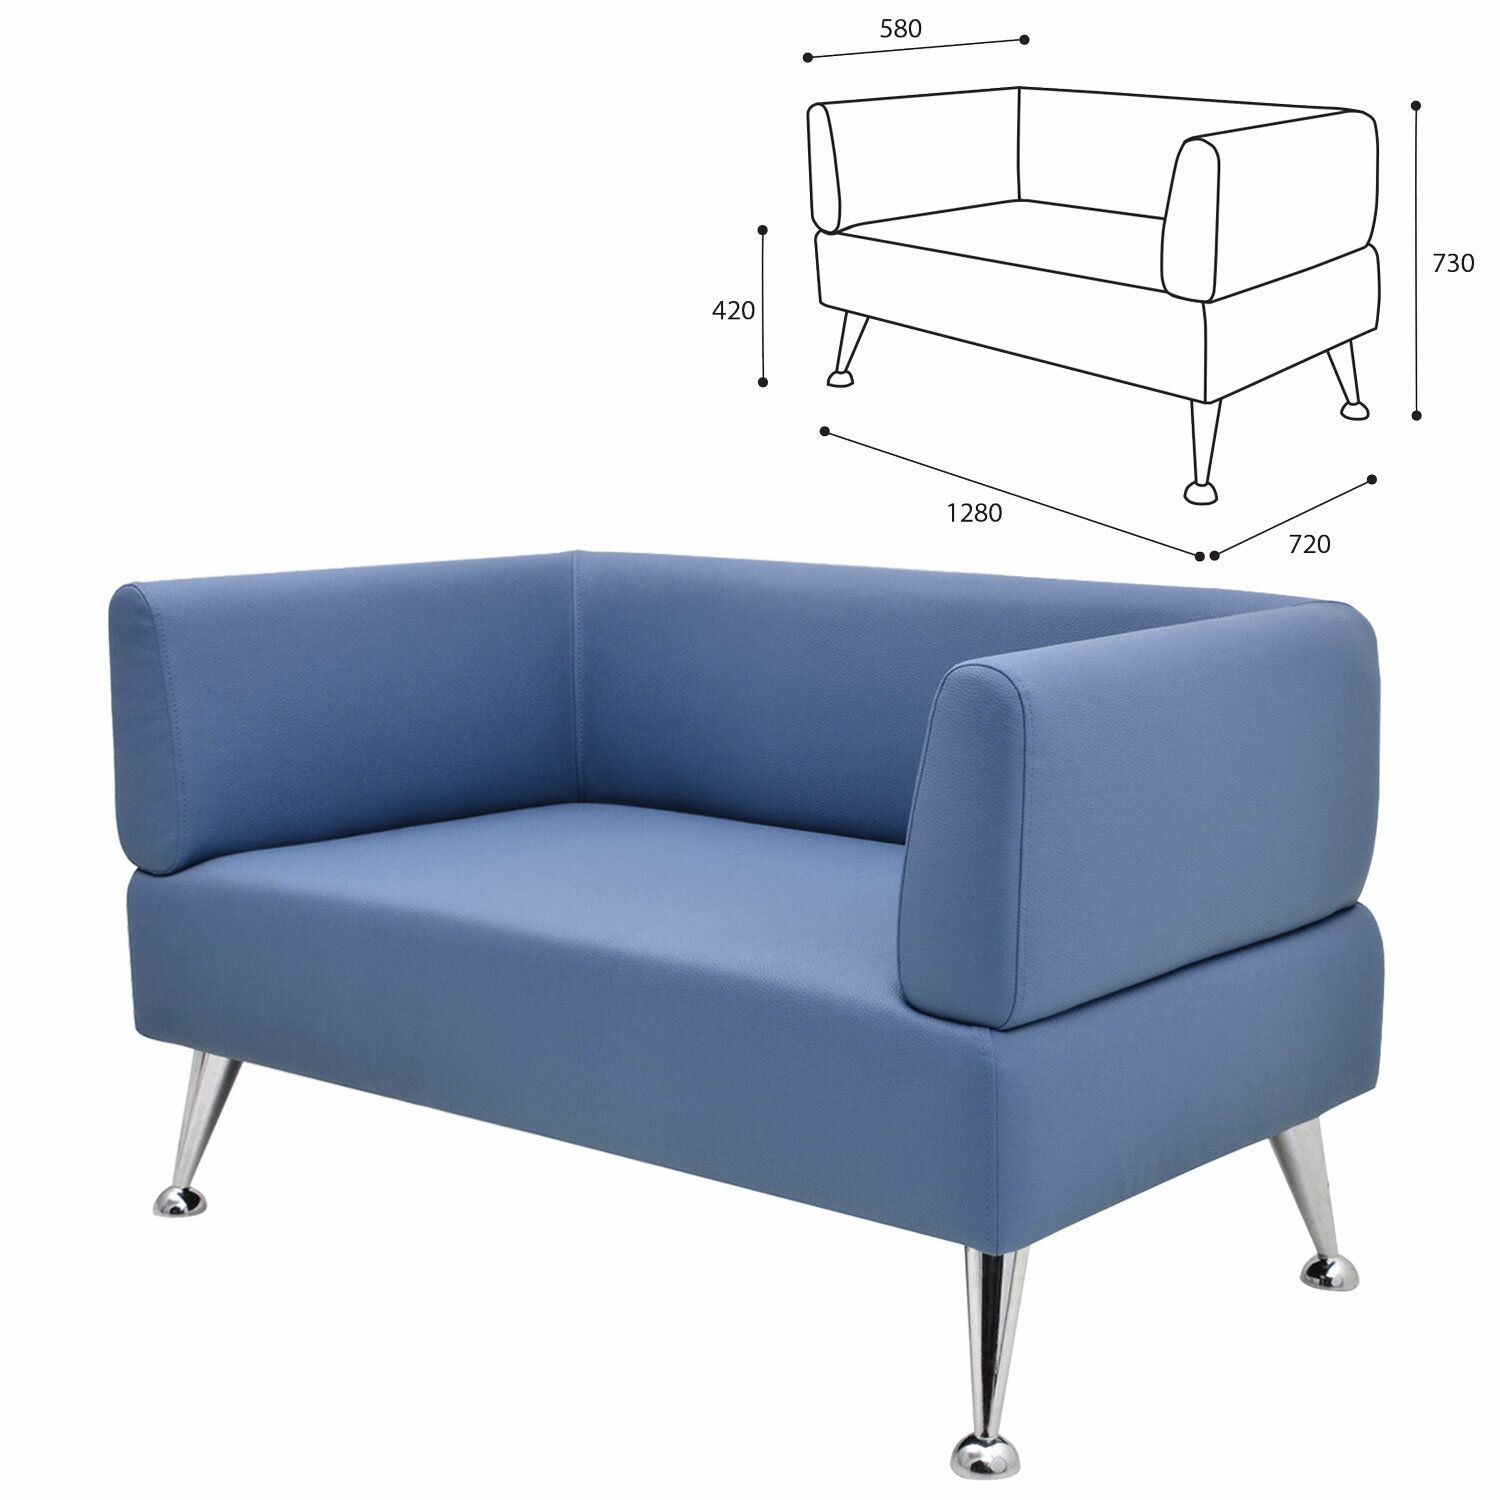 """GARTLEX / Sofa soft double """"Nord"""", """"V-700"""", 1280x720x730 mm, with armrests, eco-leather, blue"""